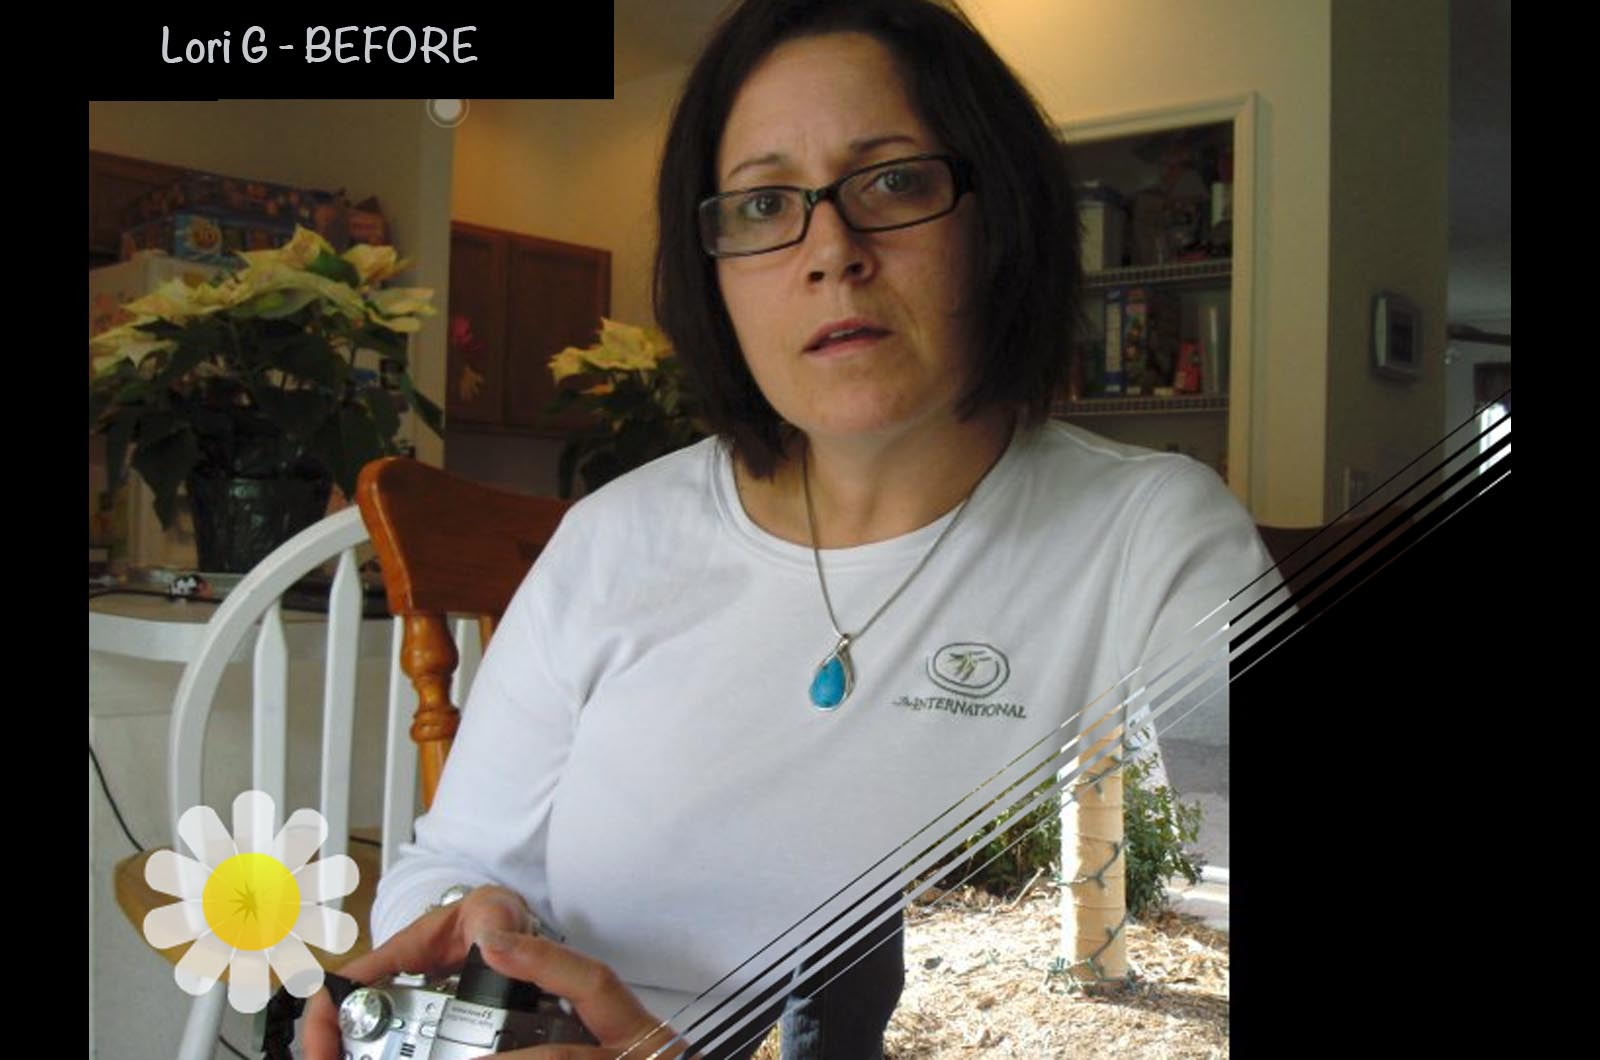 Weight Loss Testimonial - Lori G